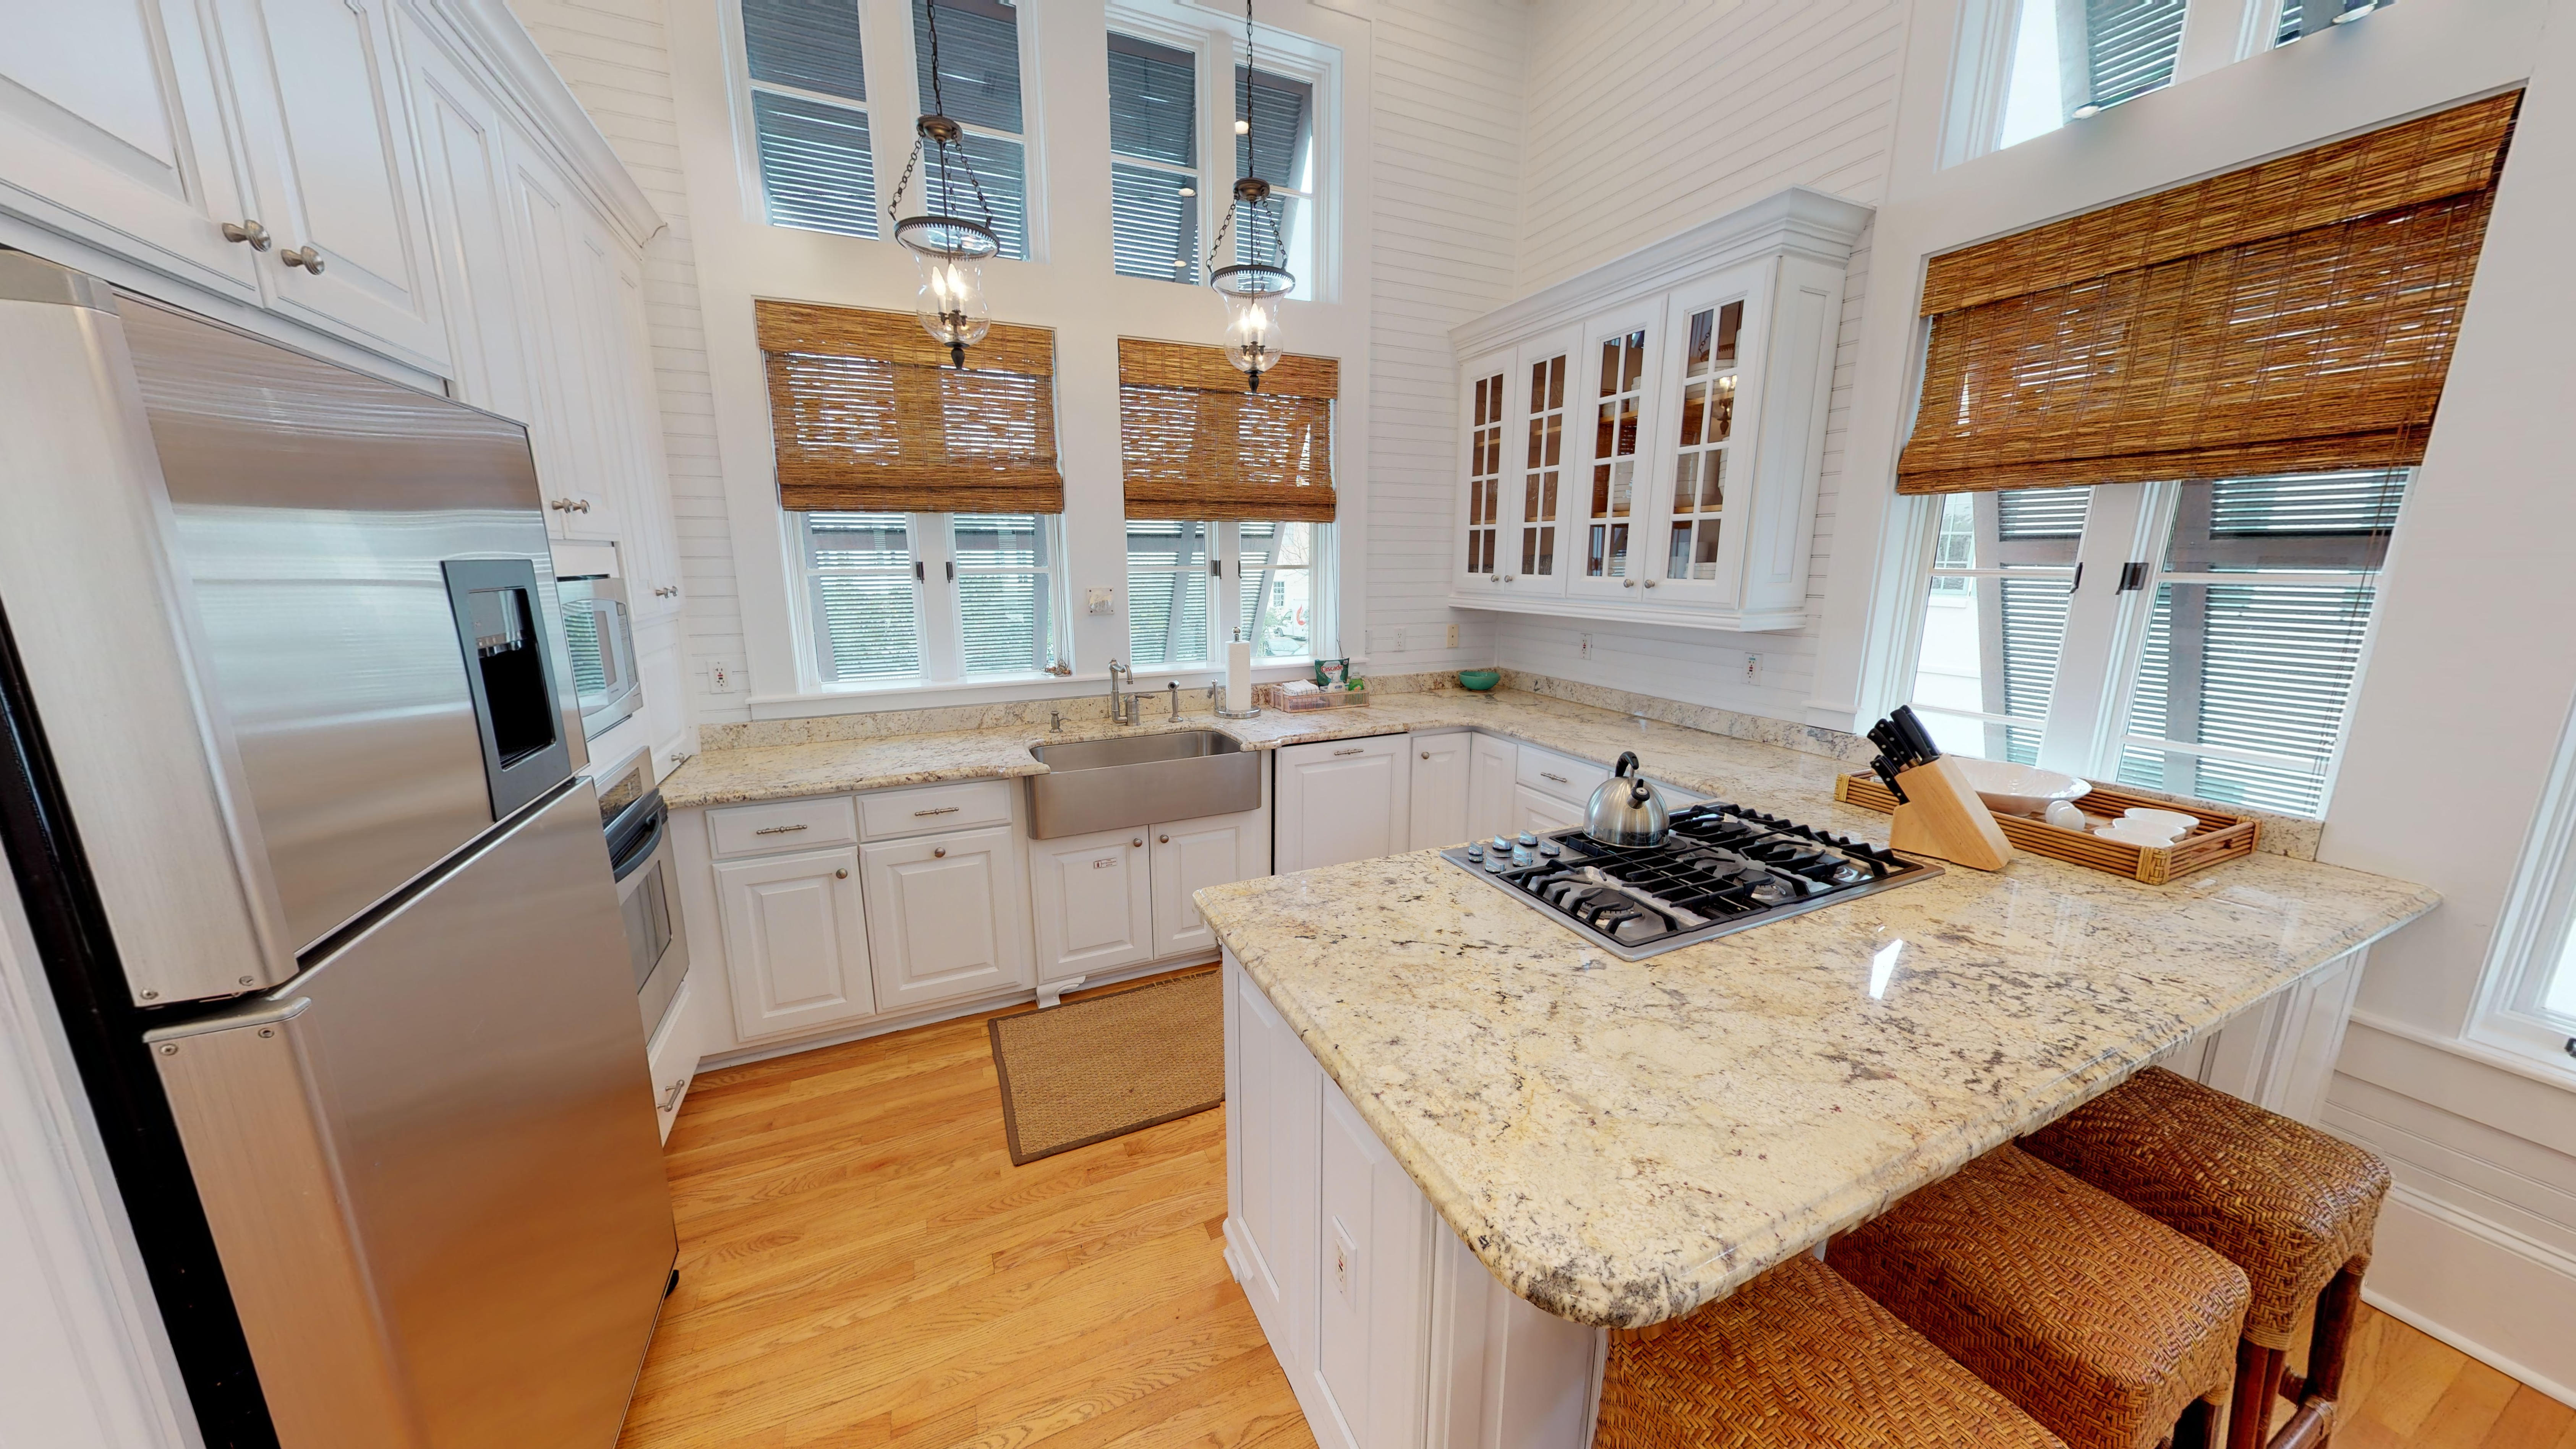 Beautiful finishes in the kitchen located just off the living area